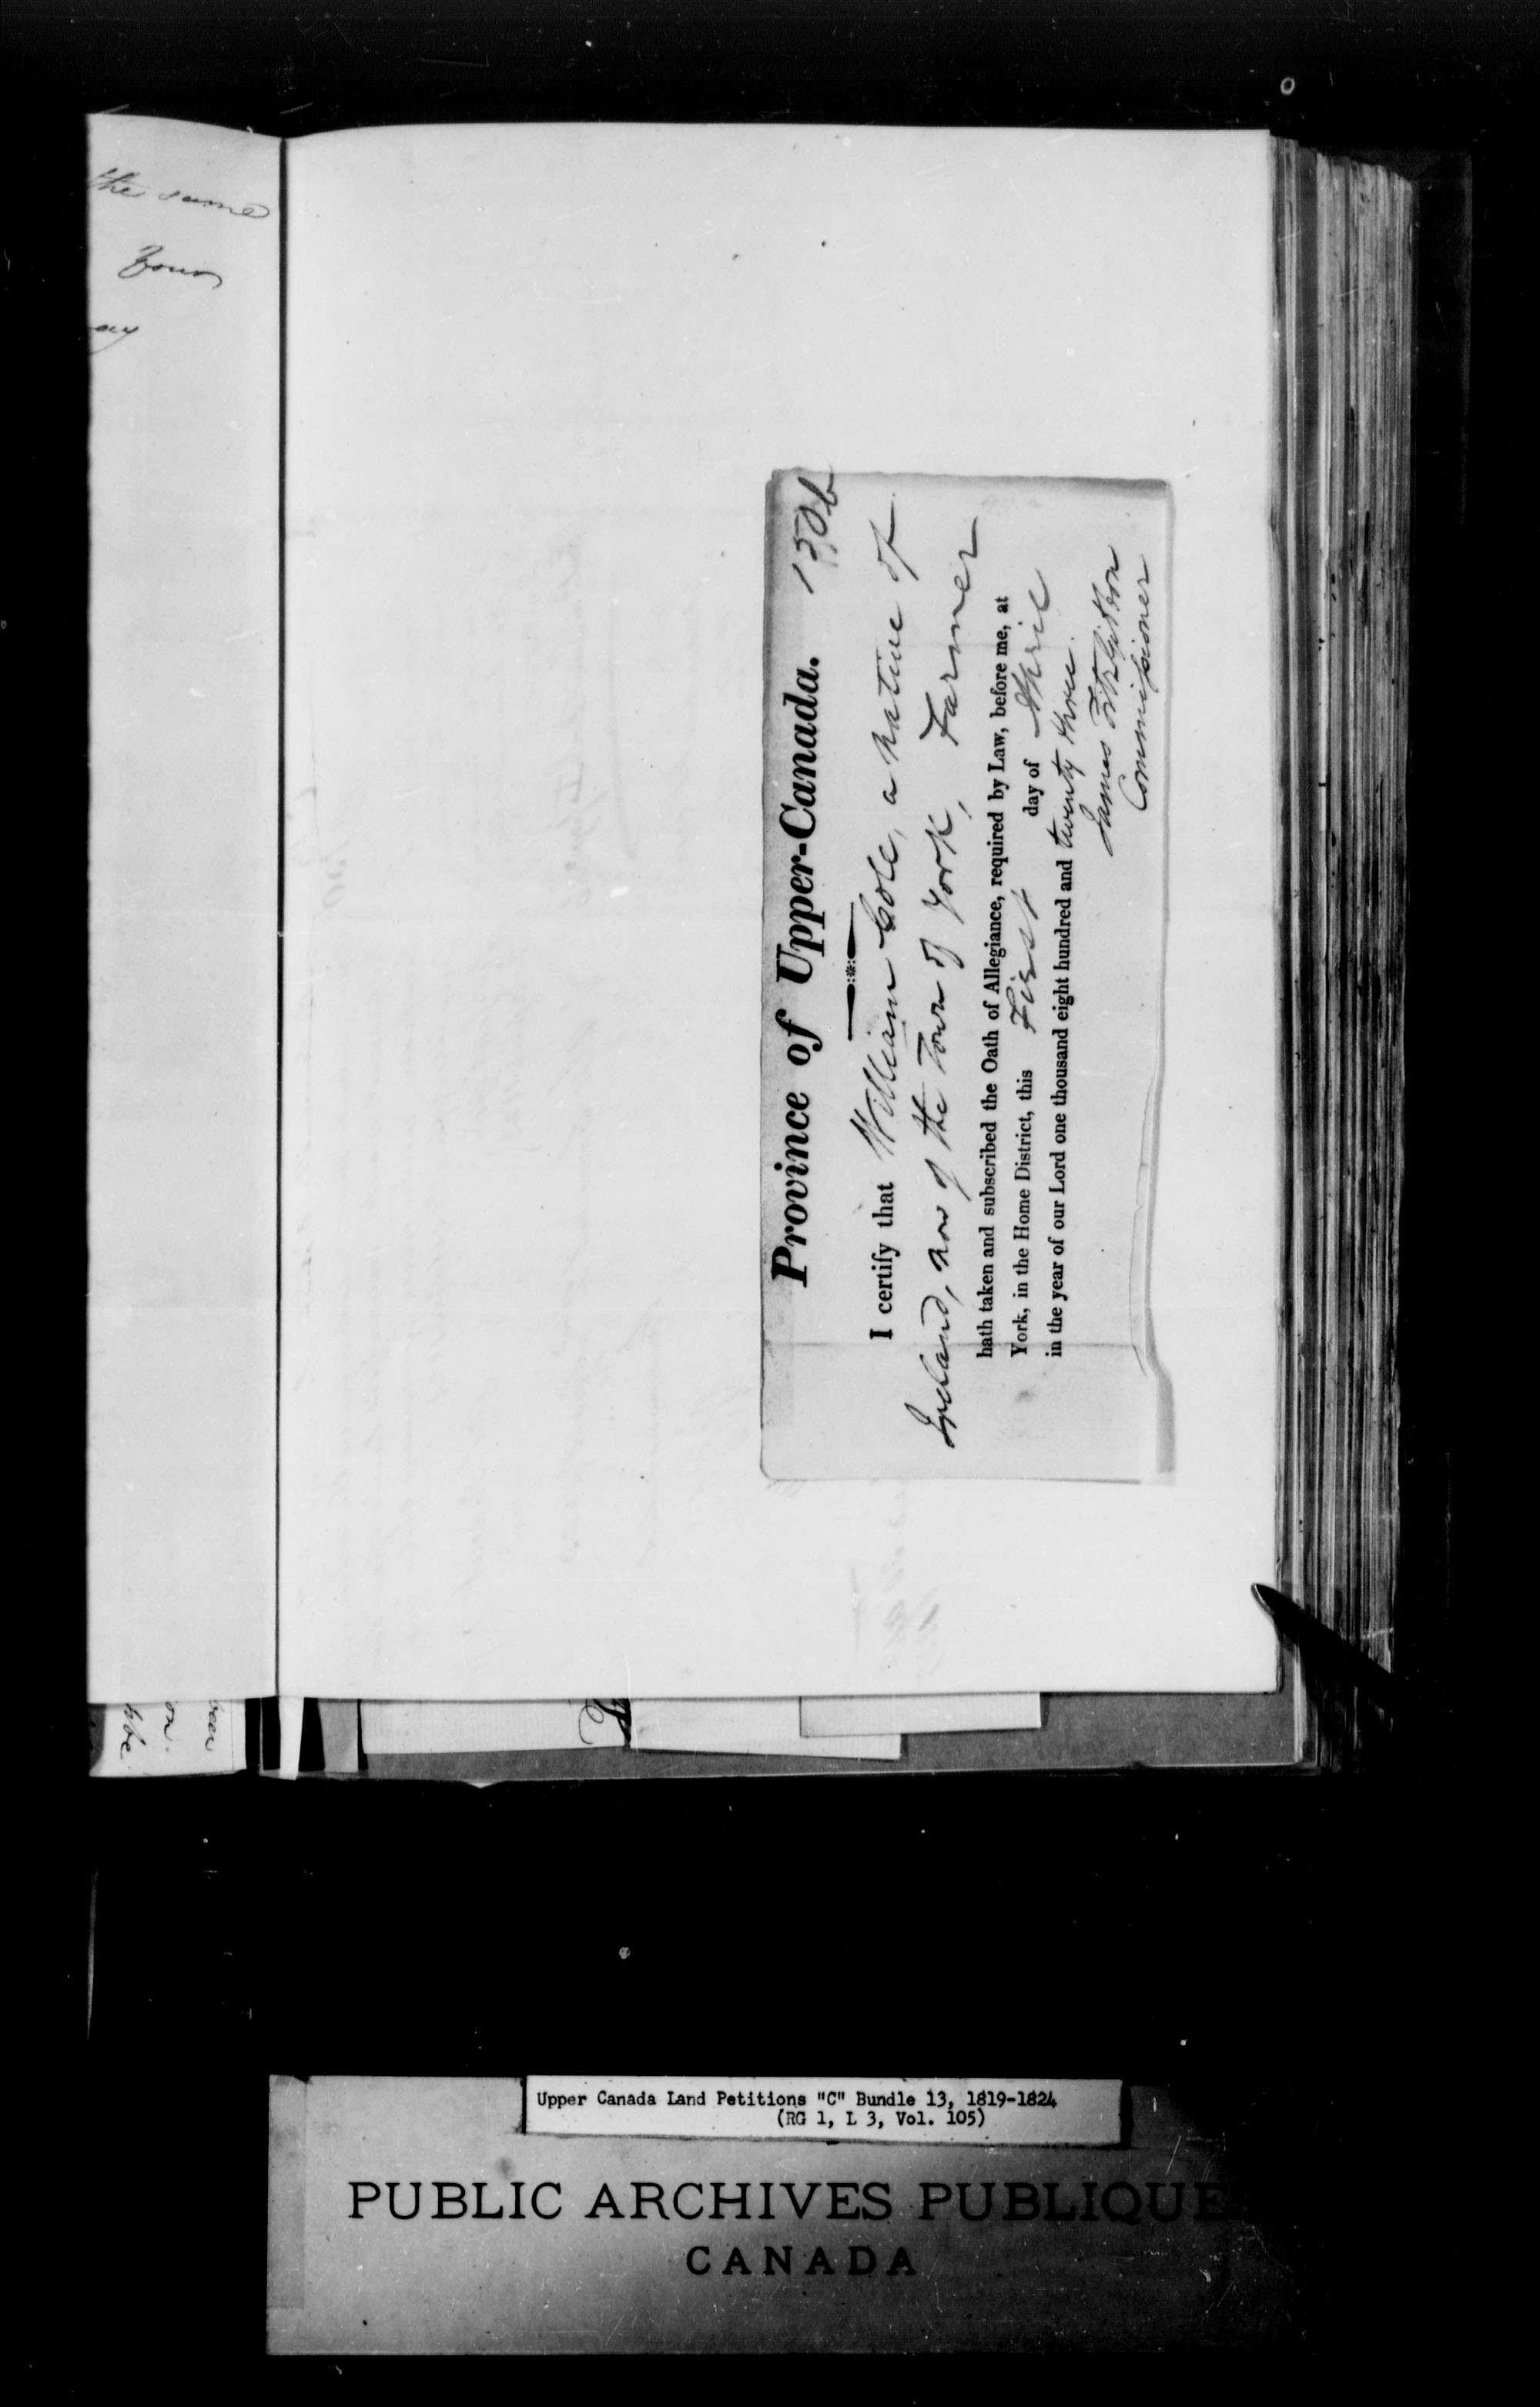 Title: Upper Canada Land Petitions (1763-1865) - Mikan Number: 205131 - Microform: c-1723